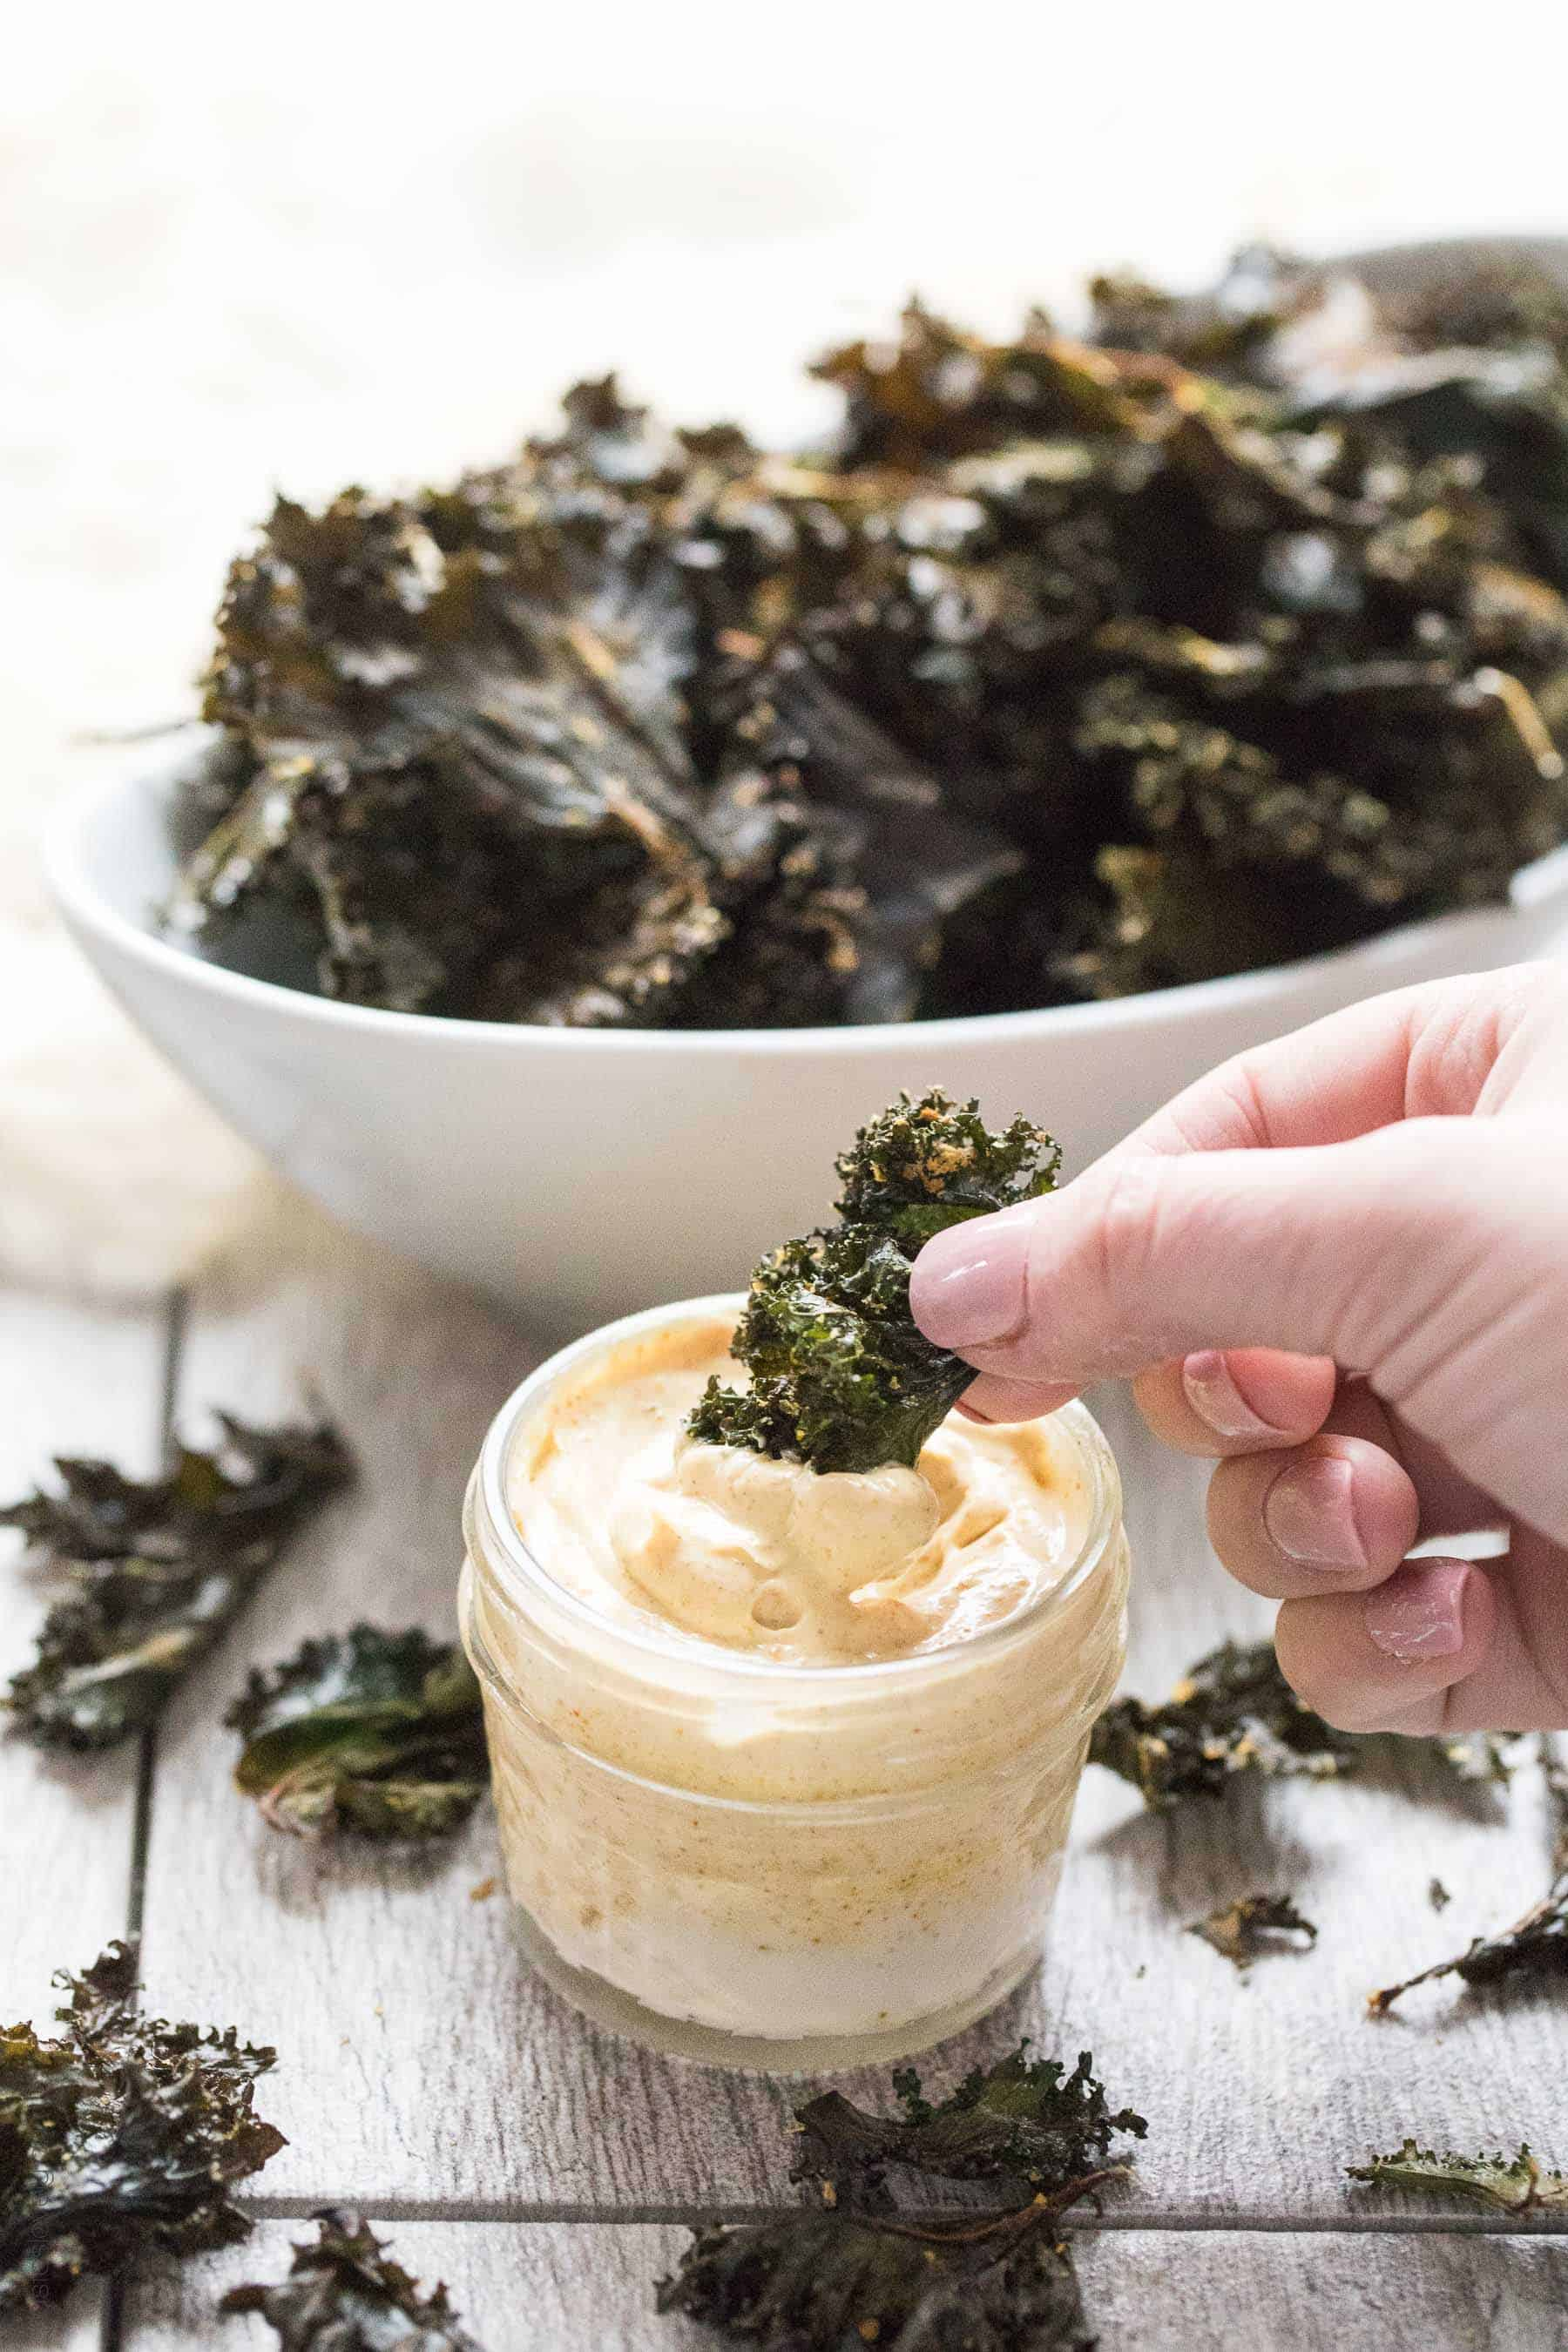 Roasted Kale Chips with Curry Aioli - a crispy, crunchy salty snack that is Paleo & Whole30. Ready in 20 minutes. Served with a curry aioli dipping sauce.